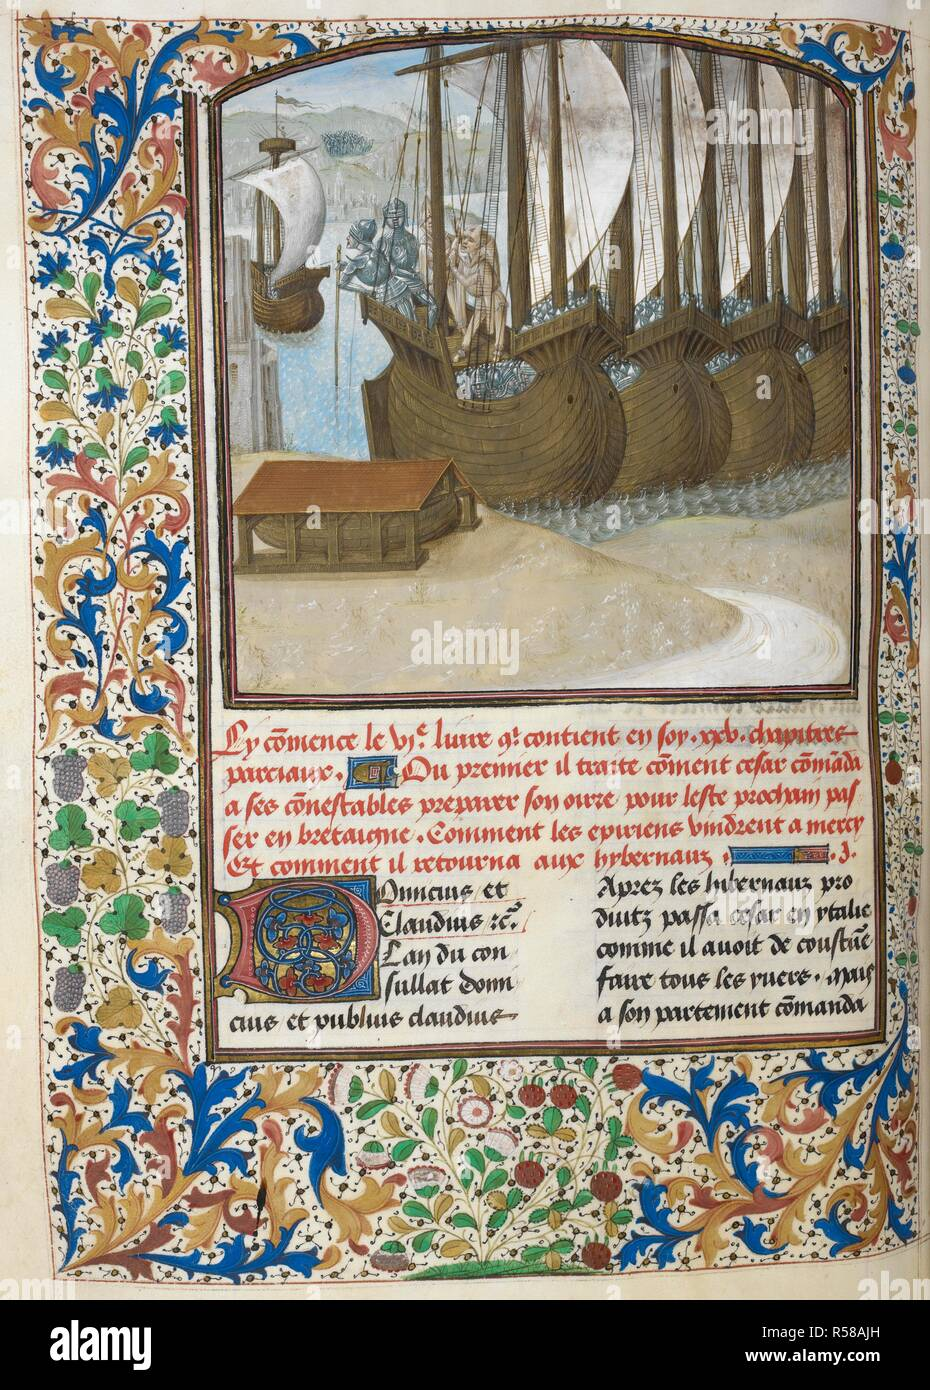 Caesar's fleet preparing for the conquest of Britain (Book 6). . Caesar, translated by Jan Du Quesne (or Jean Duchesne), Bellum Gallicum ( Les commentaires de Cesar ). 1473-1476. Source: Royal 16 G. VIII f.164v. Author: JULIUS CAESAR. Du Quesne, Jehan. - Stock Image